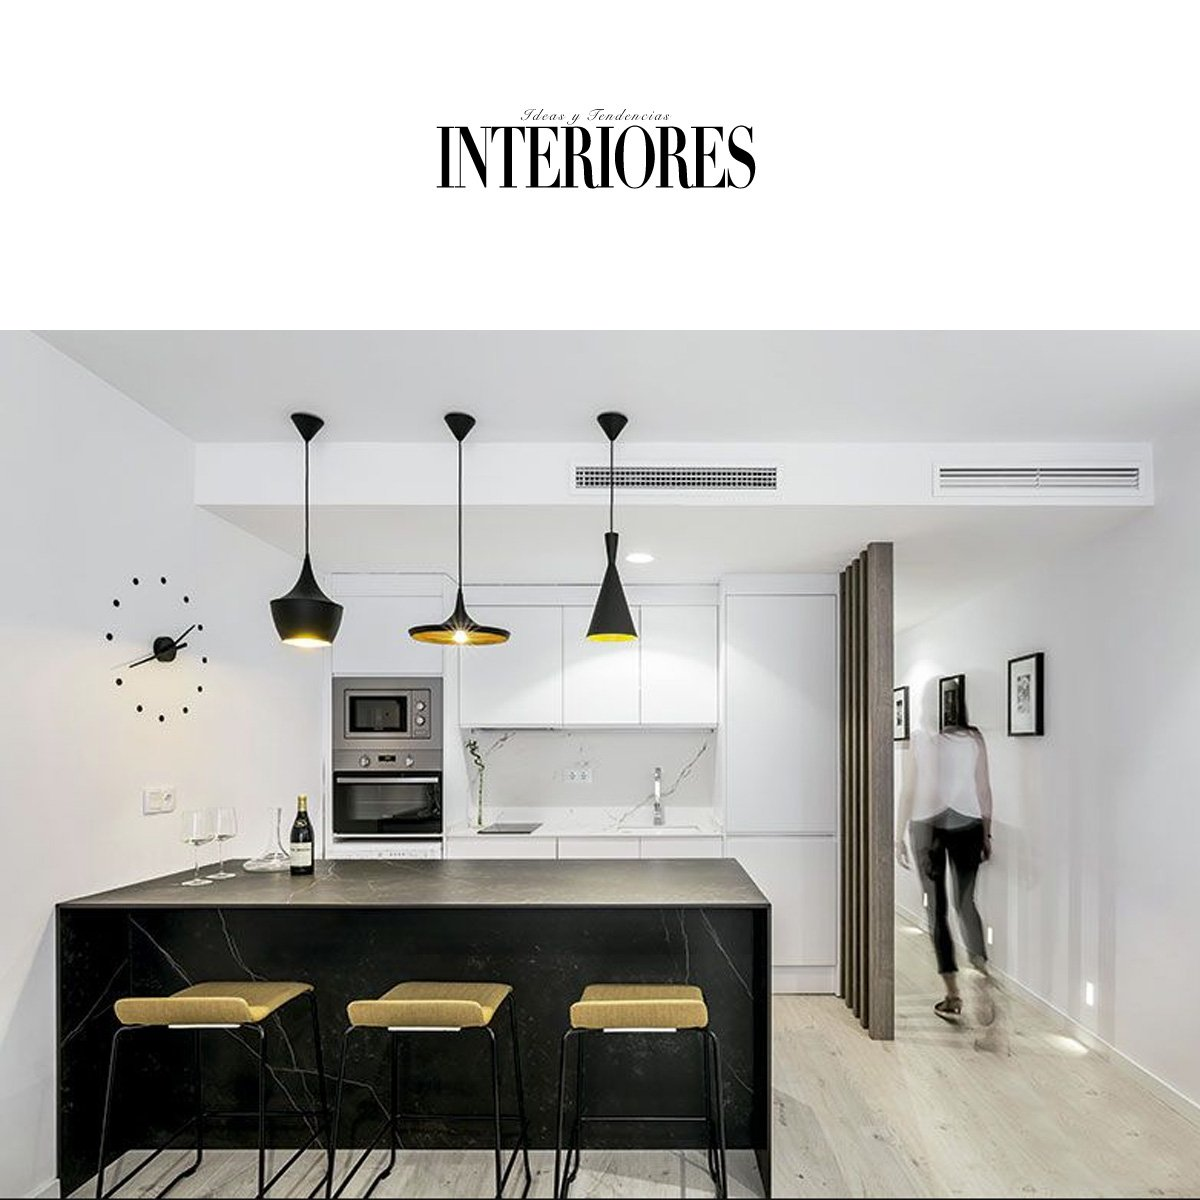 Ideas y tendencias Interiores